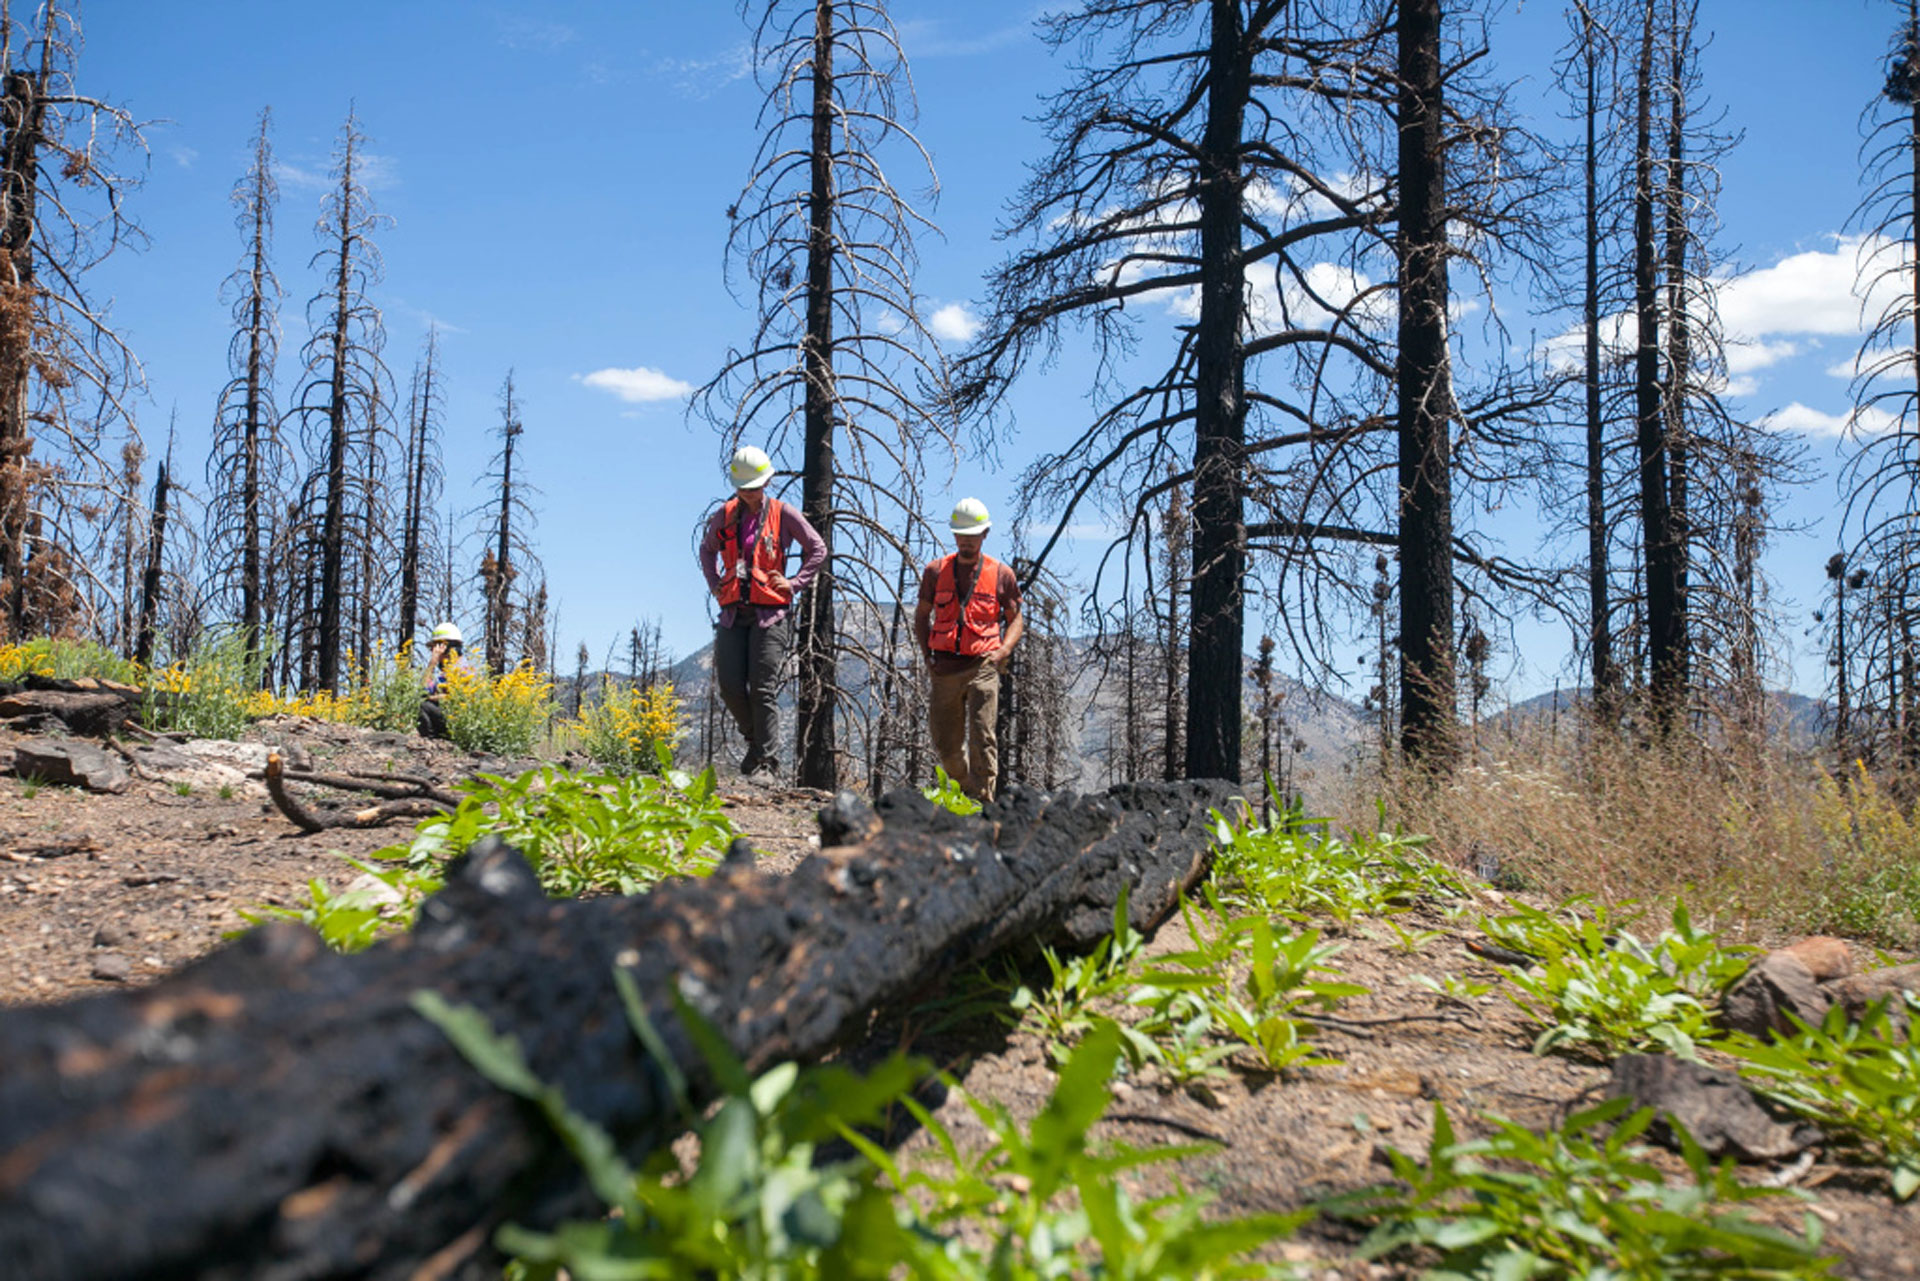 U.S. Forest Service crew members Paris Krause and Michael DeNicola walk along a high intensity burn area (mostly dead Jeffrey pines and White firs) one year after the Lake Fire in the San Bernardino National Forest on July 20, 2016.